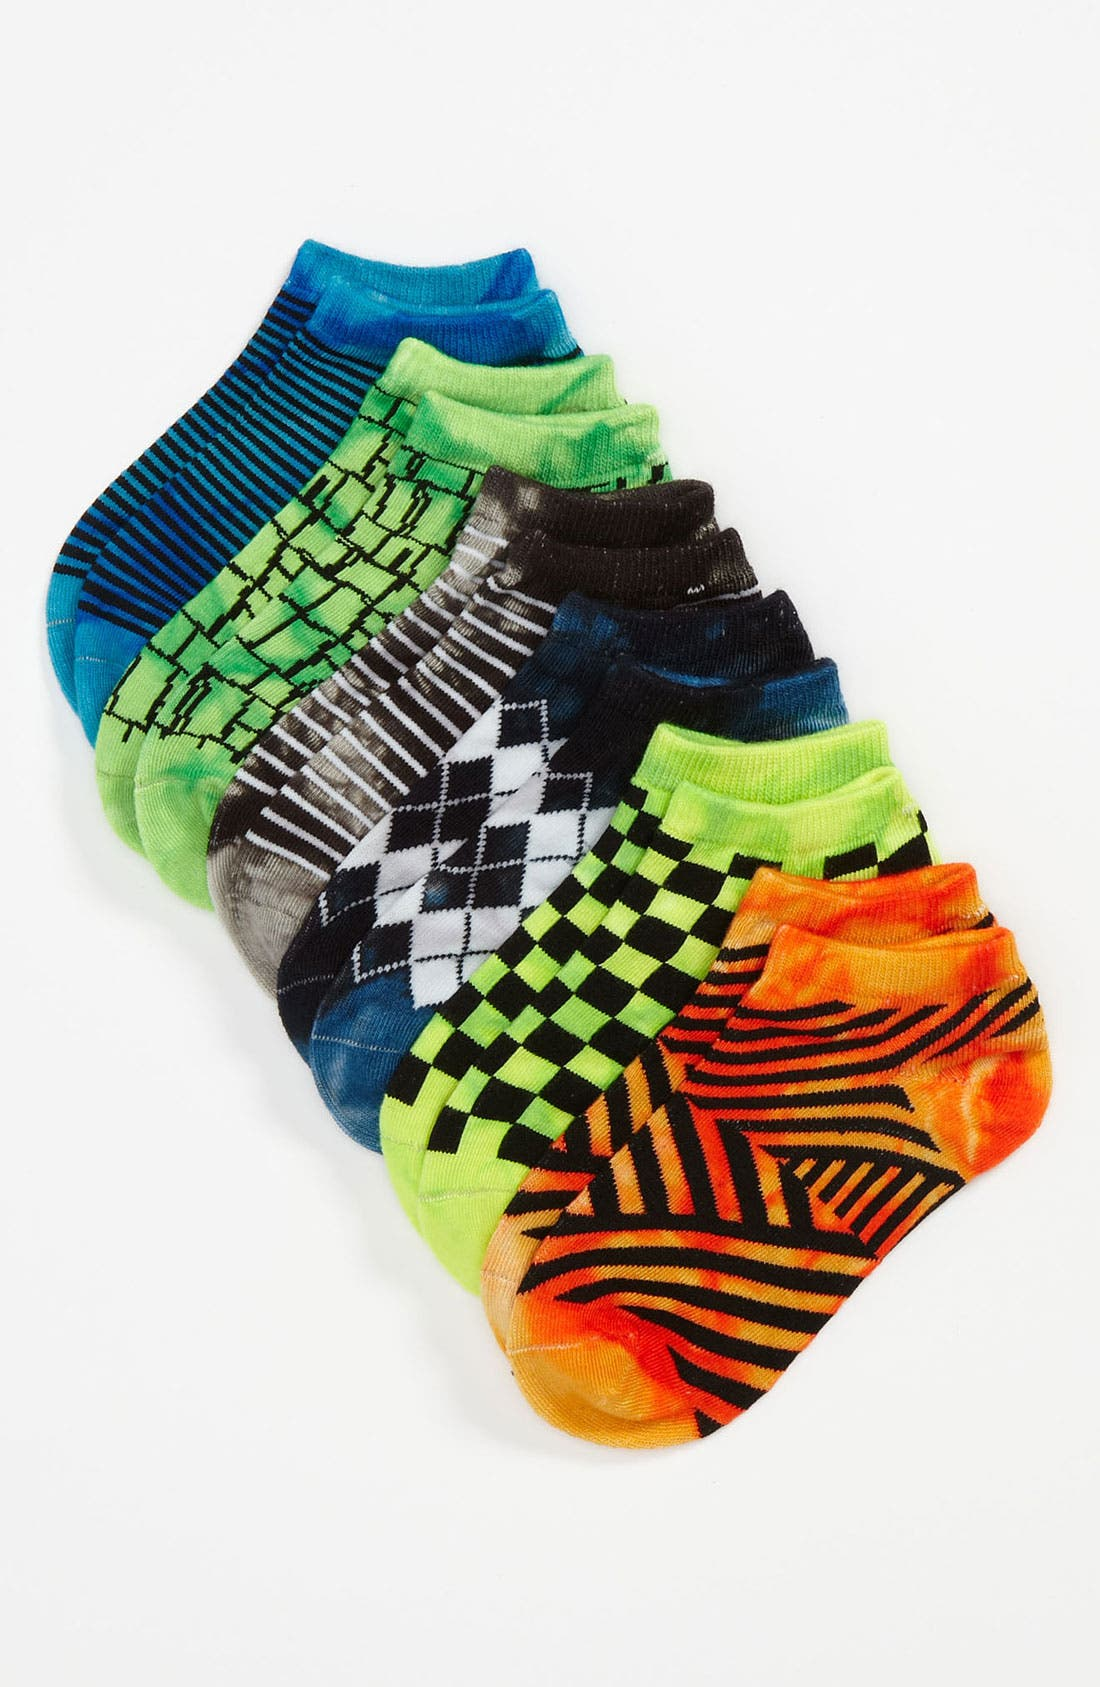 Main Image - Nordstrom 'Pop Mix' Socks (6-Pack) (Kids)